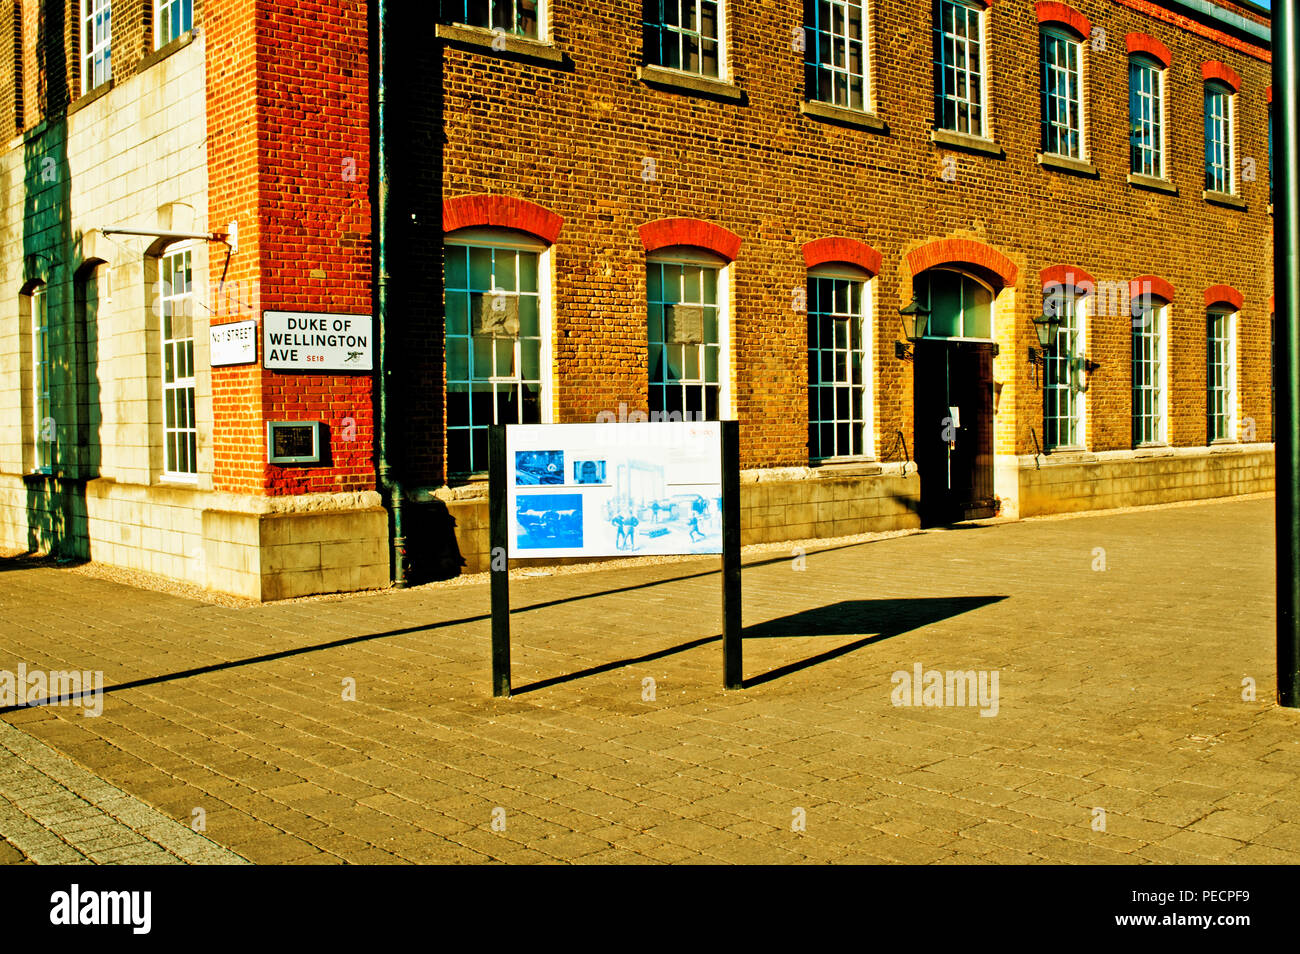 Duke of Wellington Avenue, Royal Arsenal Riverside, Woolwich Arsenal, London, England - Stock Image